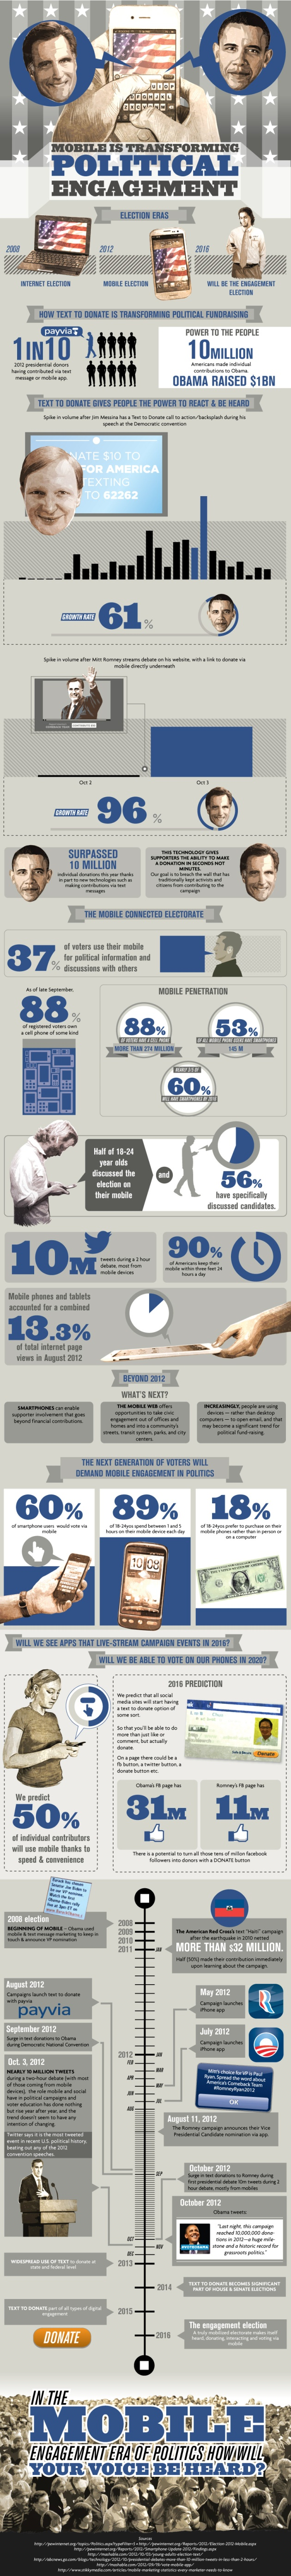 mobile election politics 2012 infographic